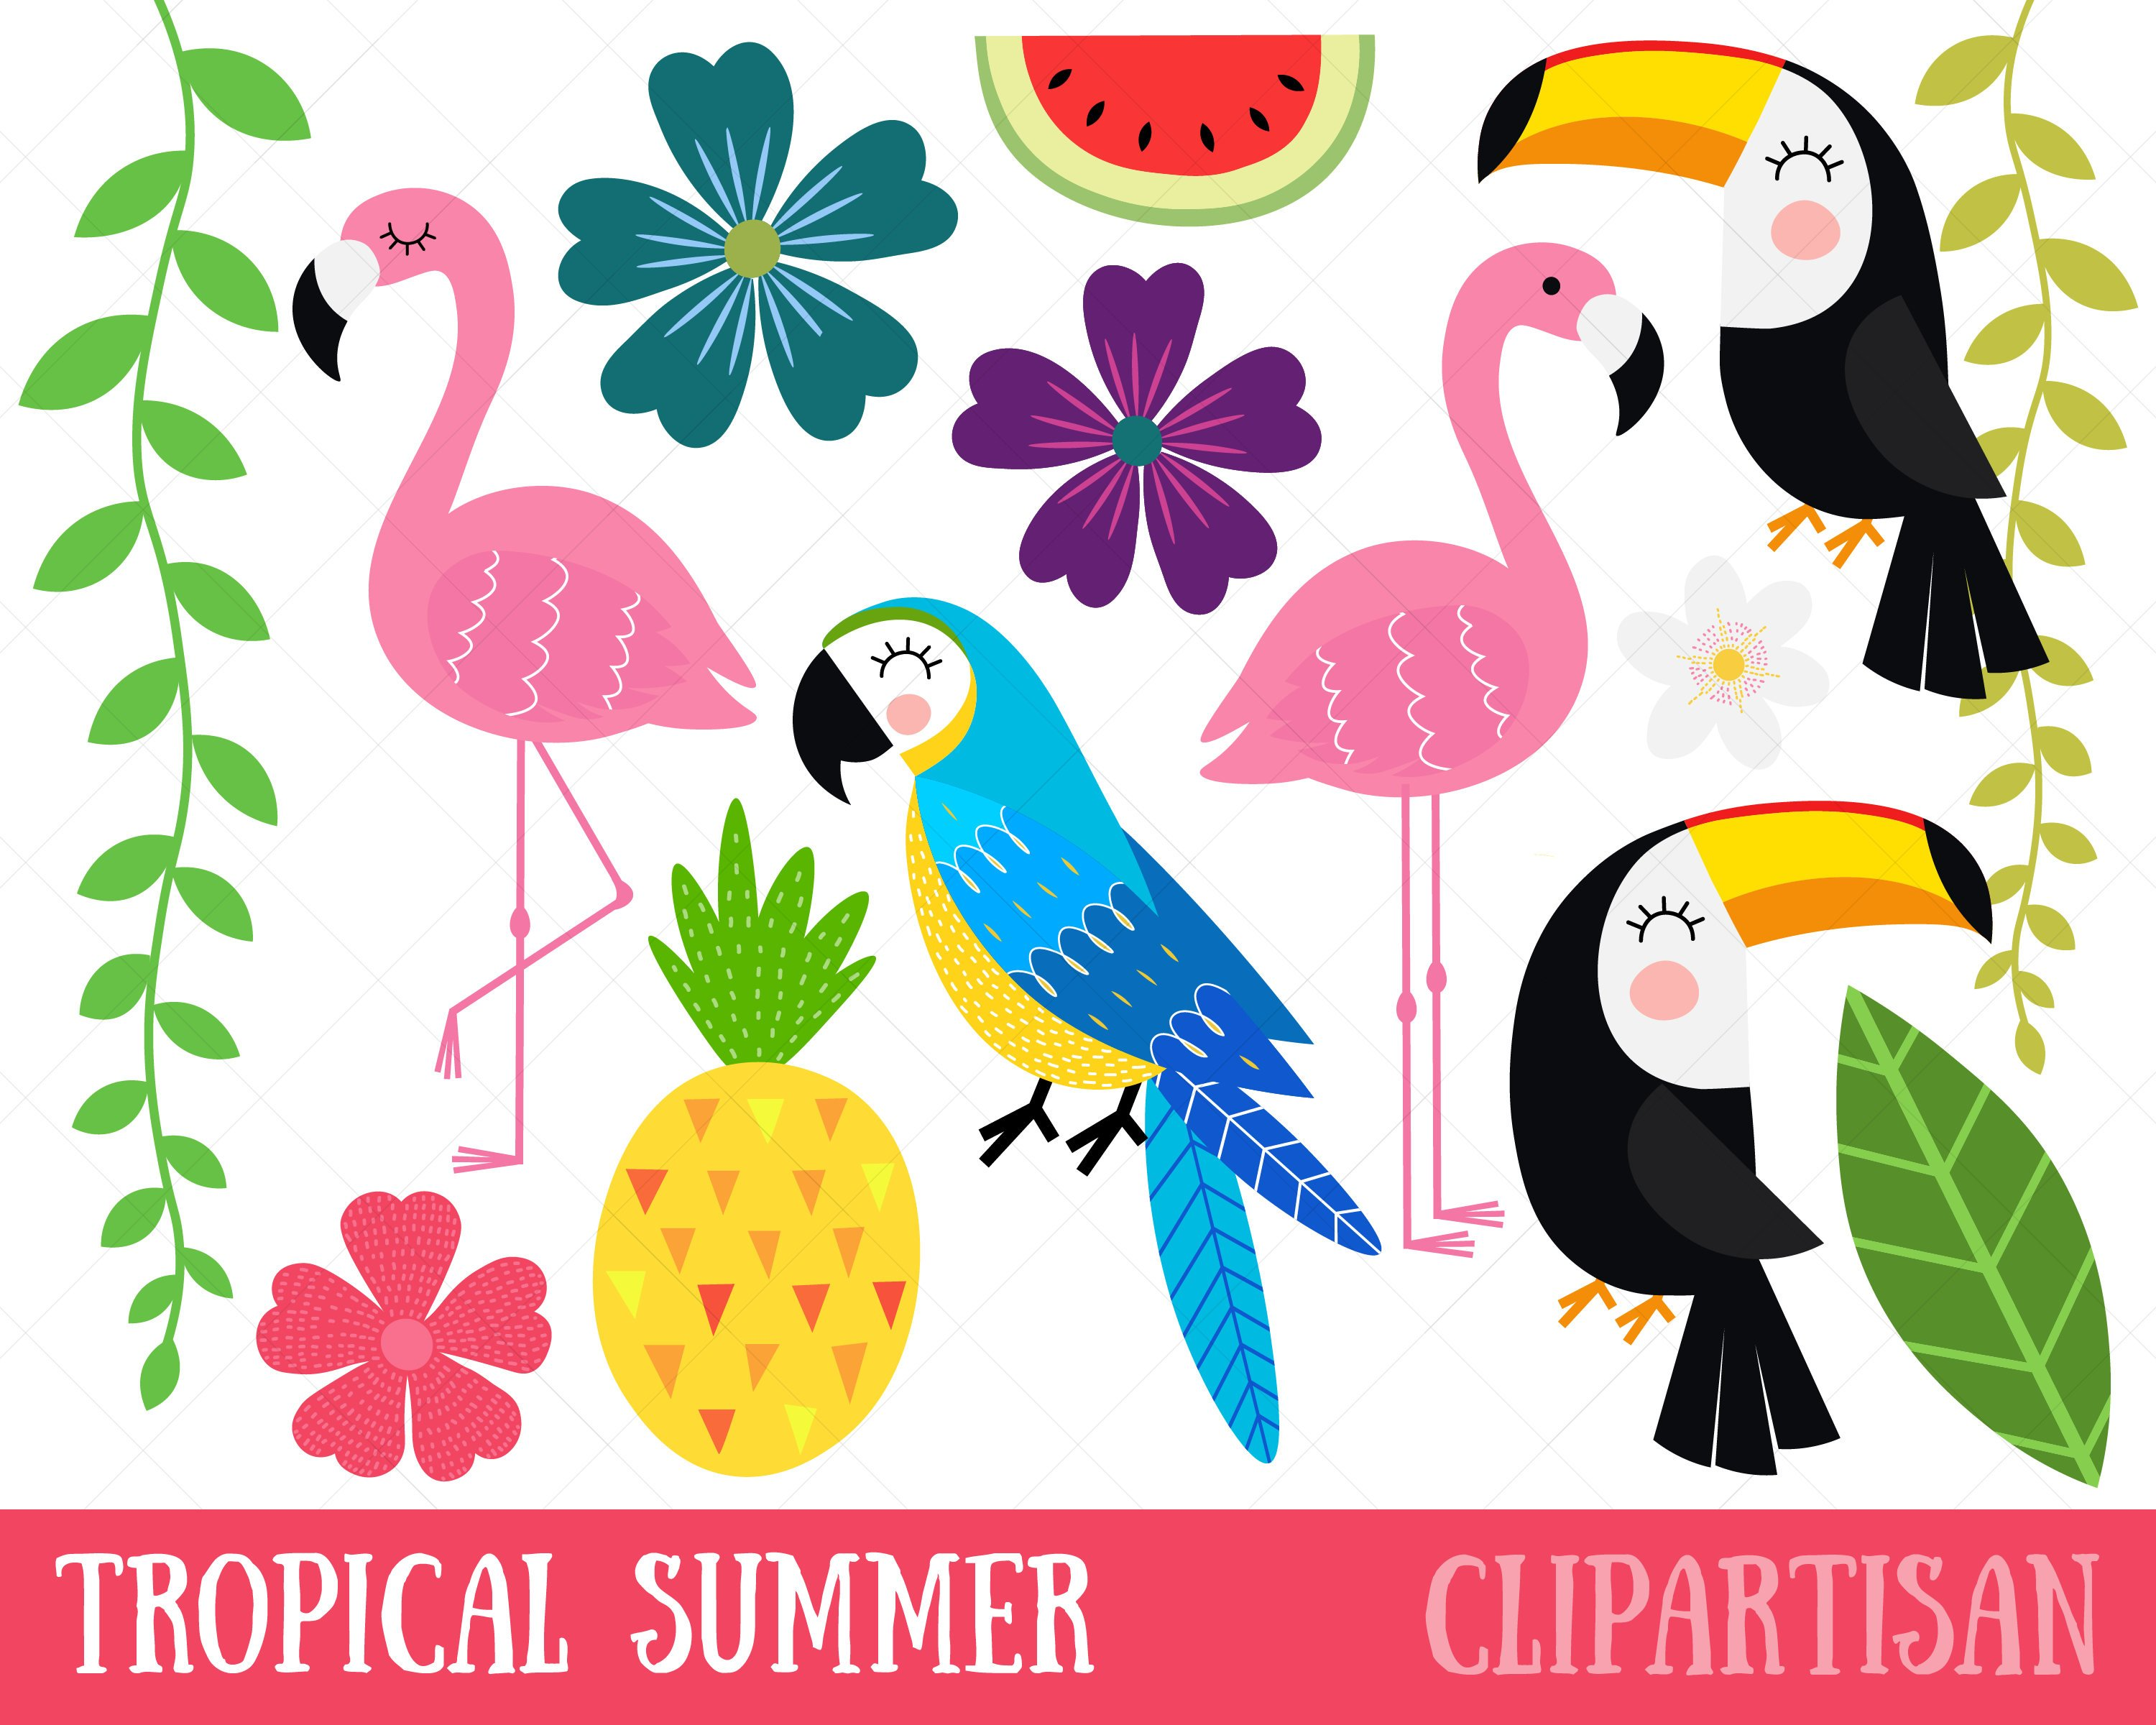 Tropical bird clipart graphic library download Tropical bird clipart 4 » Clipart Station graphic library download